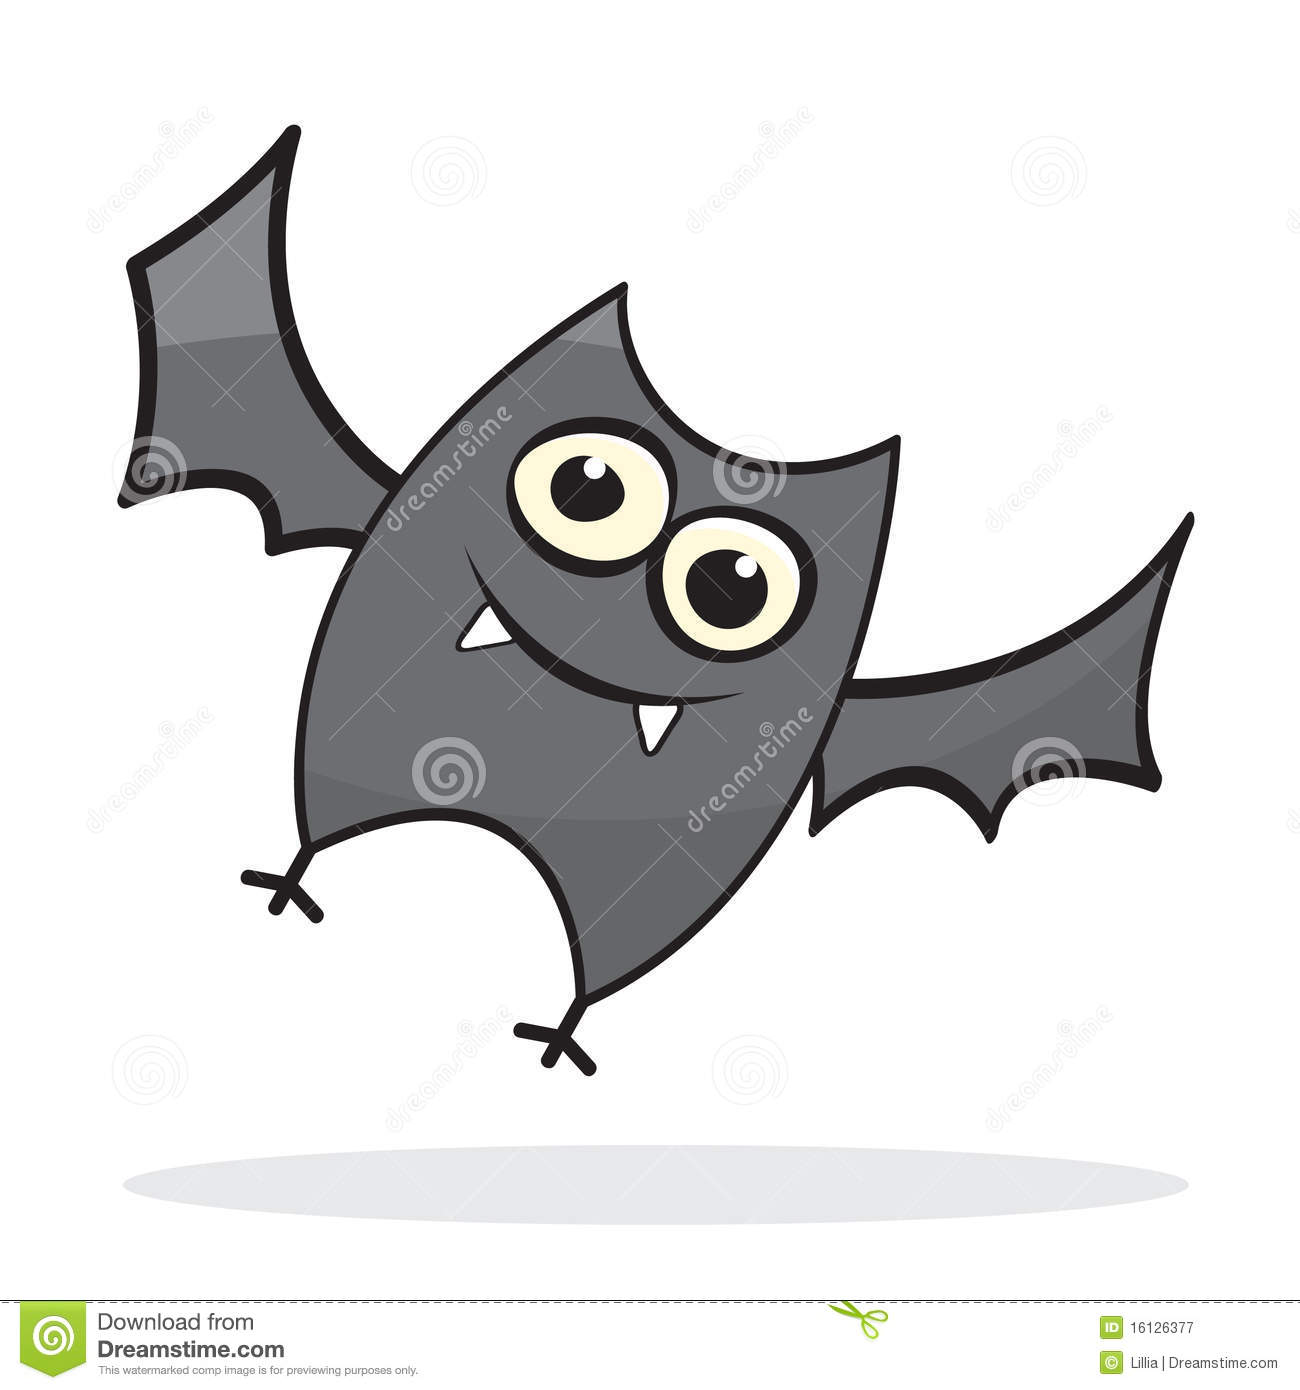 Cute little cartoon bat stock vector illustration of for How to draw a small bat